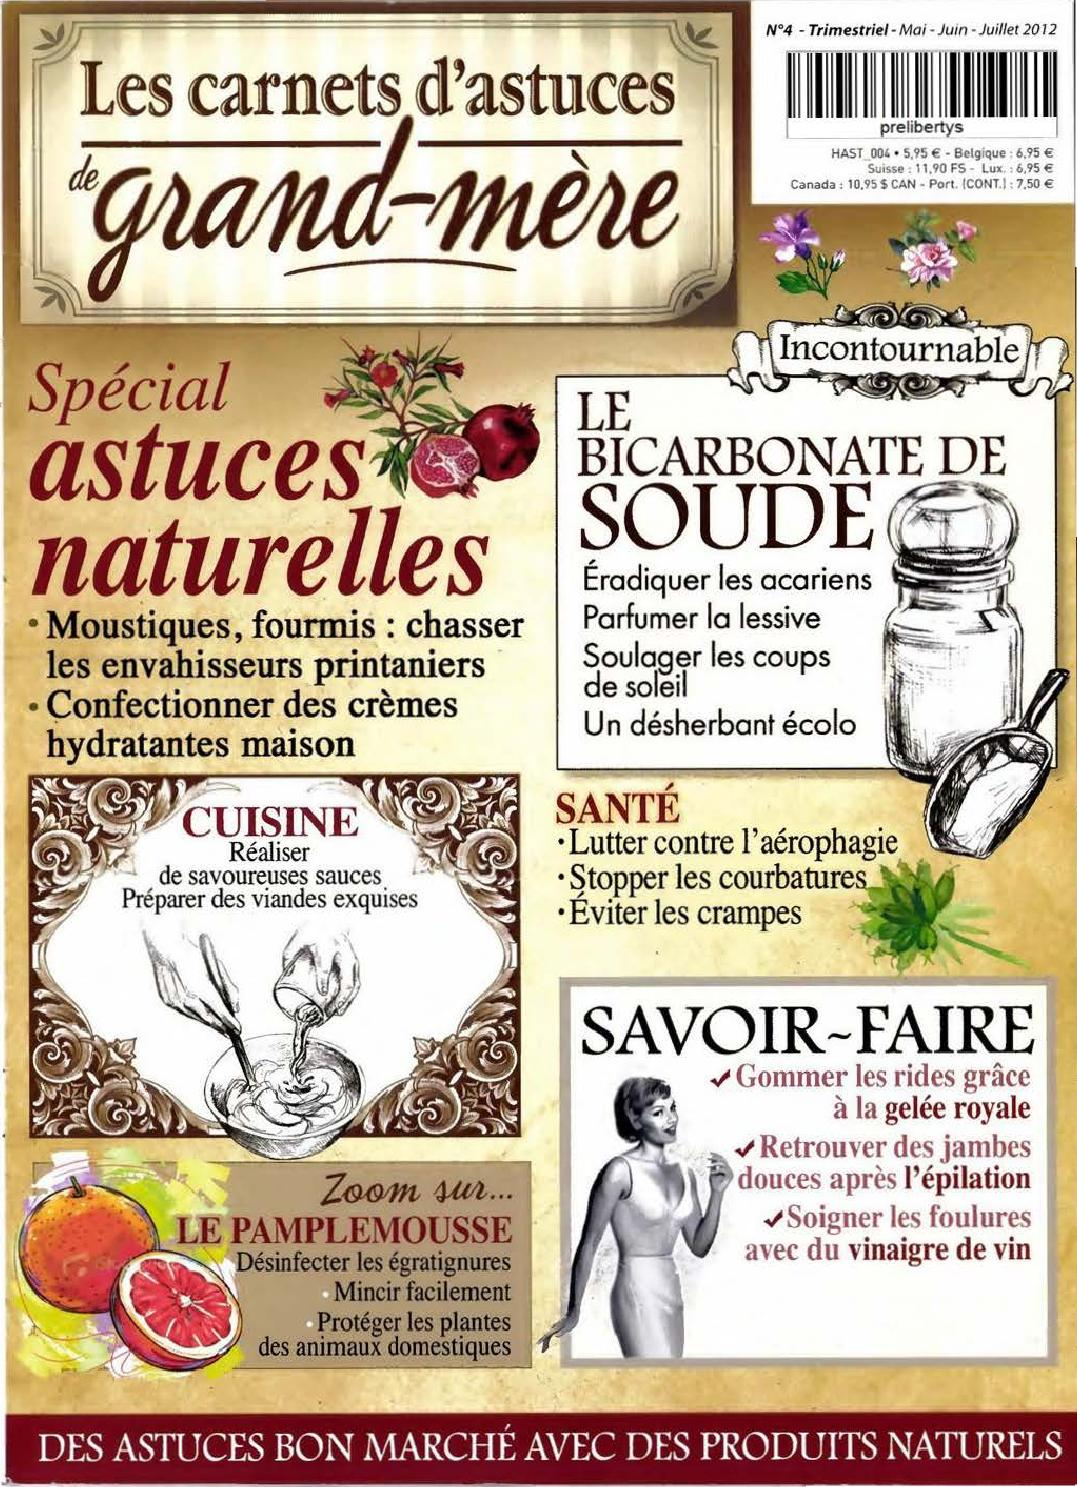 Decontractant Musculaire Remede De Grand Mere : decontractant, musculaire, remede, grand, Carnets, D'astuces, Grand, Hendrix, Issuu